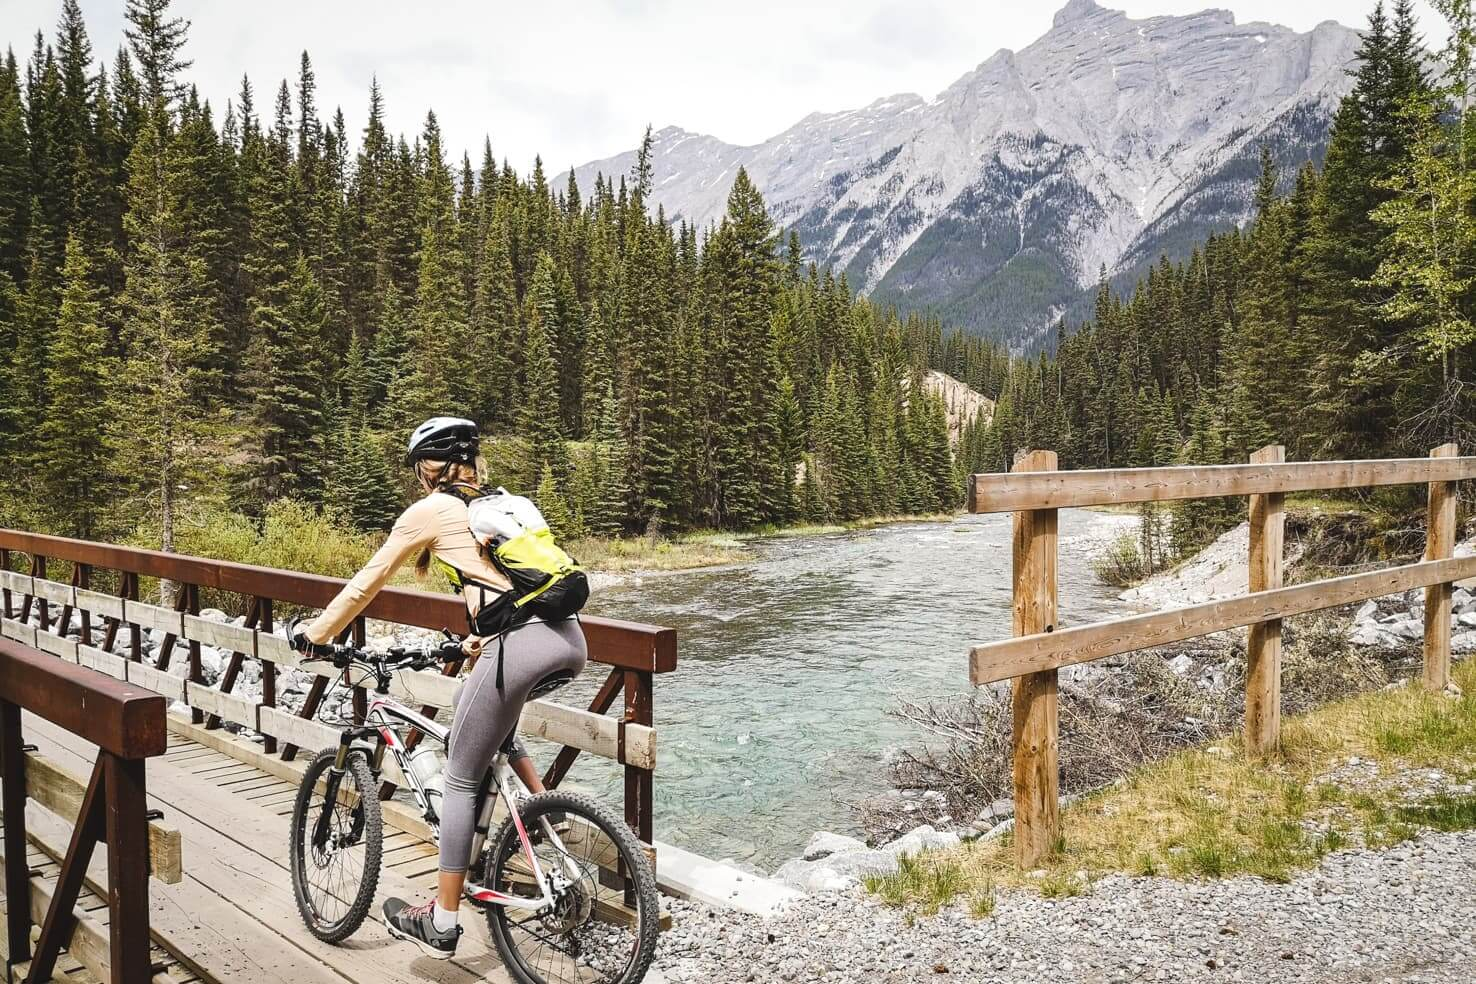 20 Things to do in Canmore - Bike the mountainous Goat Creek Trail from Canmore to Banff